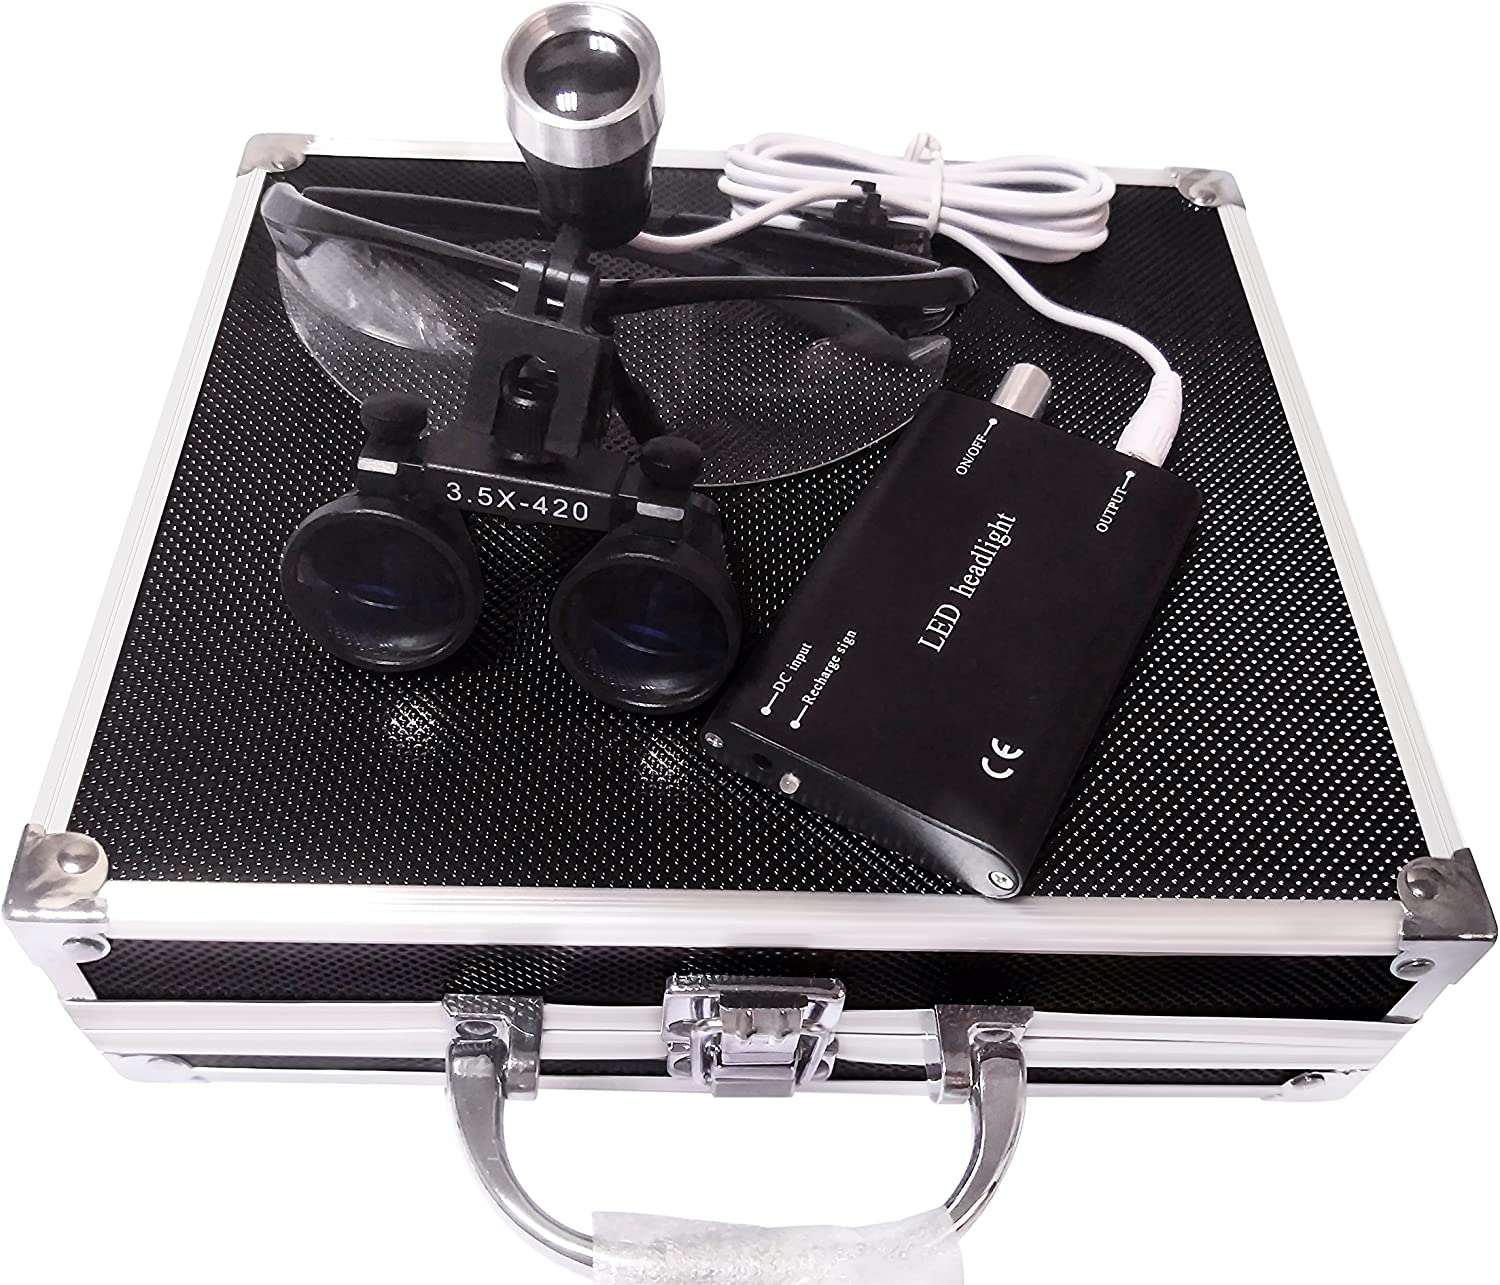 Doc.Royal 3.5X 420mm shipfree Working Distance Surgical Max 54% OFF Optical Bin Glass